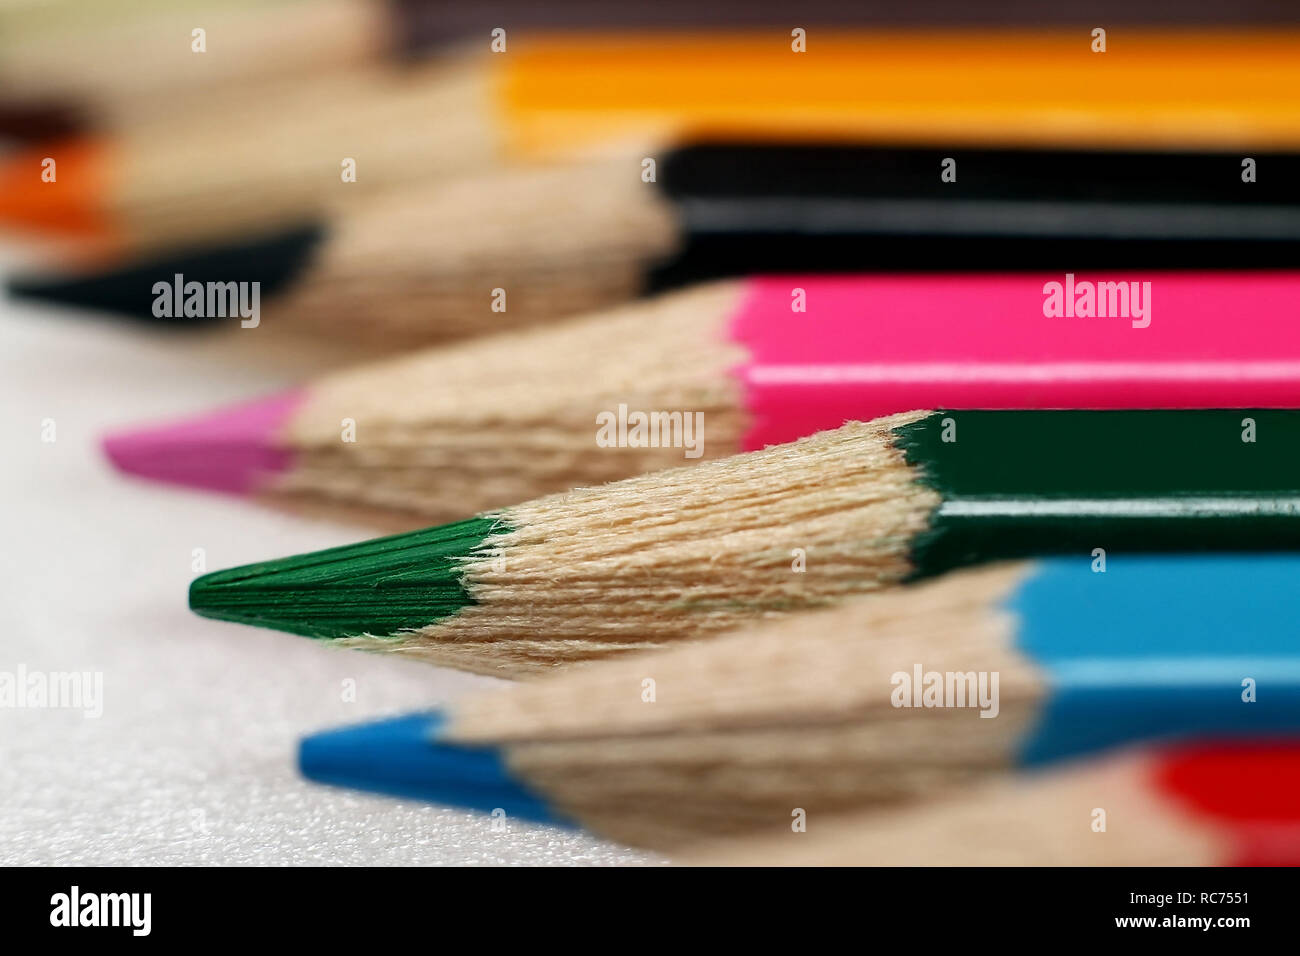 Colored pencils arranged in a row - Stock Image